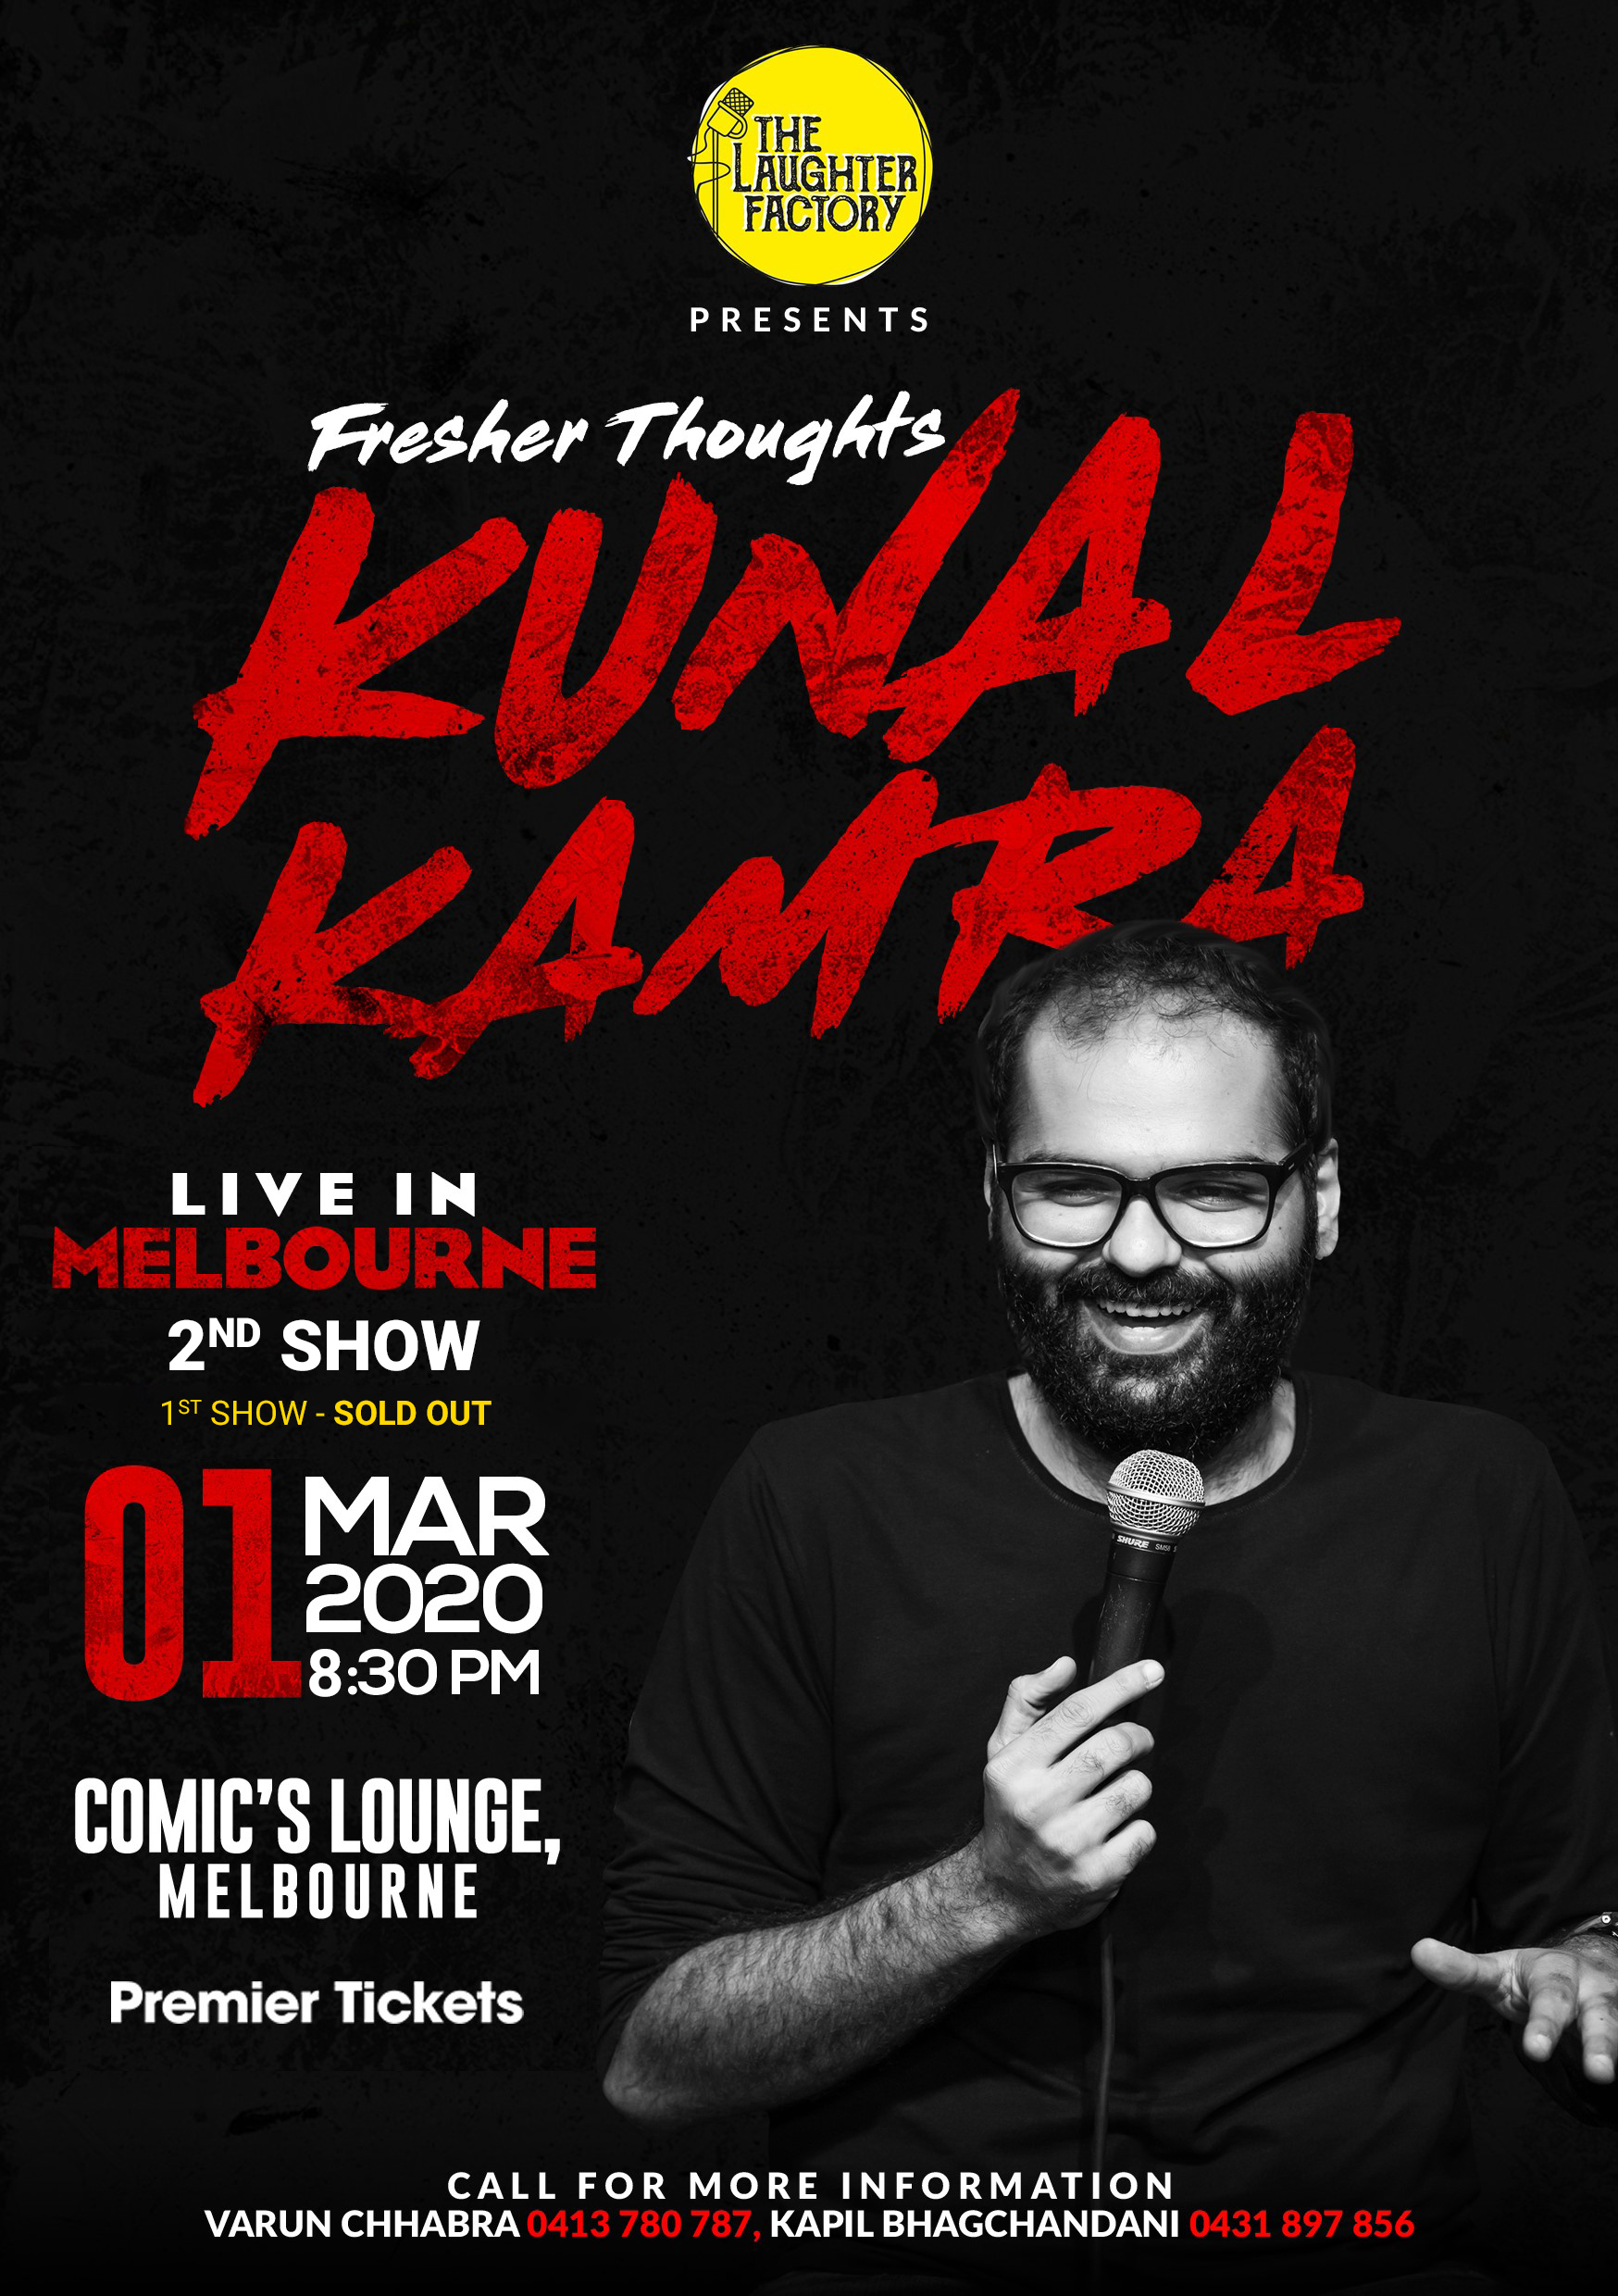 Fresher Thoughts by Kunal Kamra in Melbourne – 2nd Show